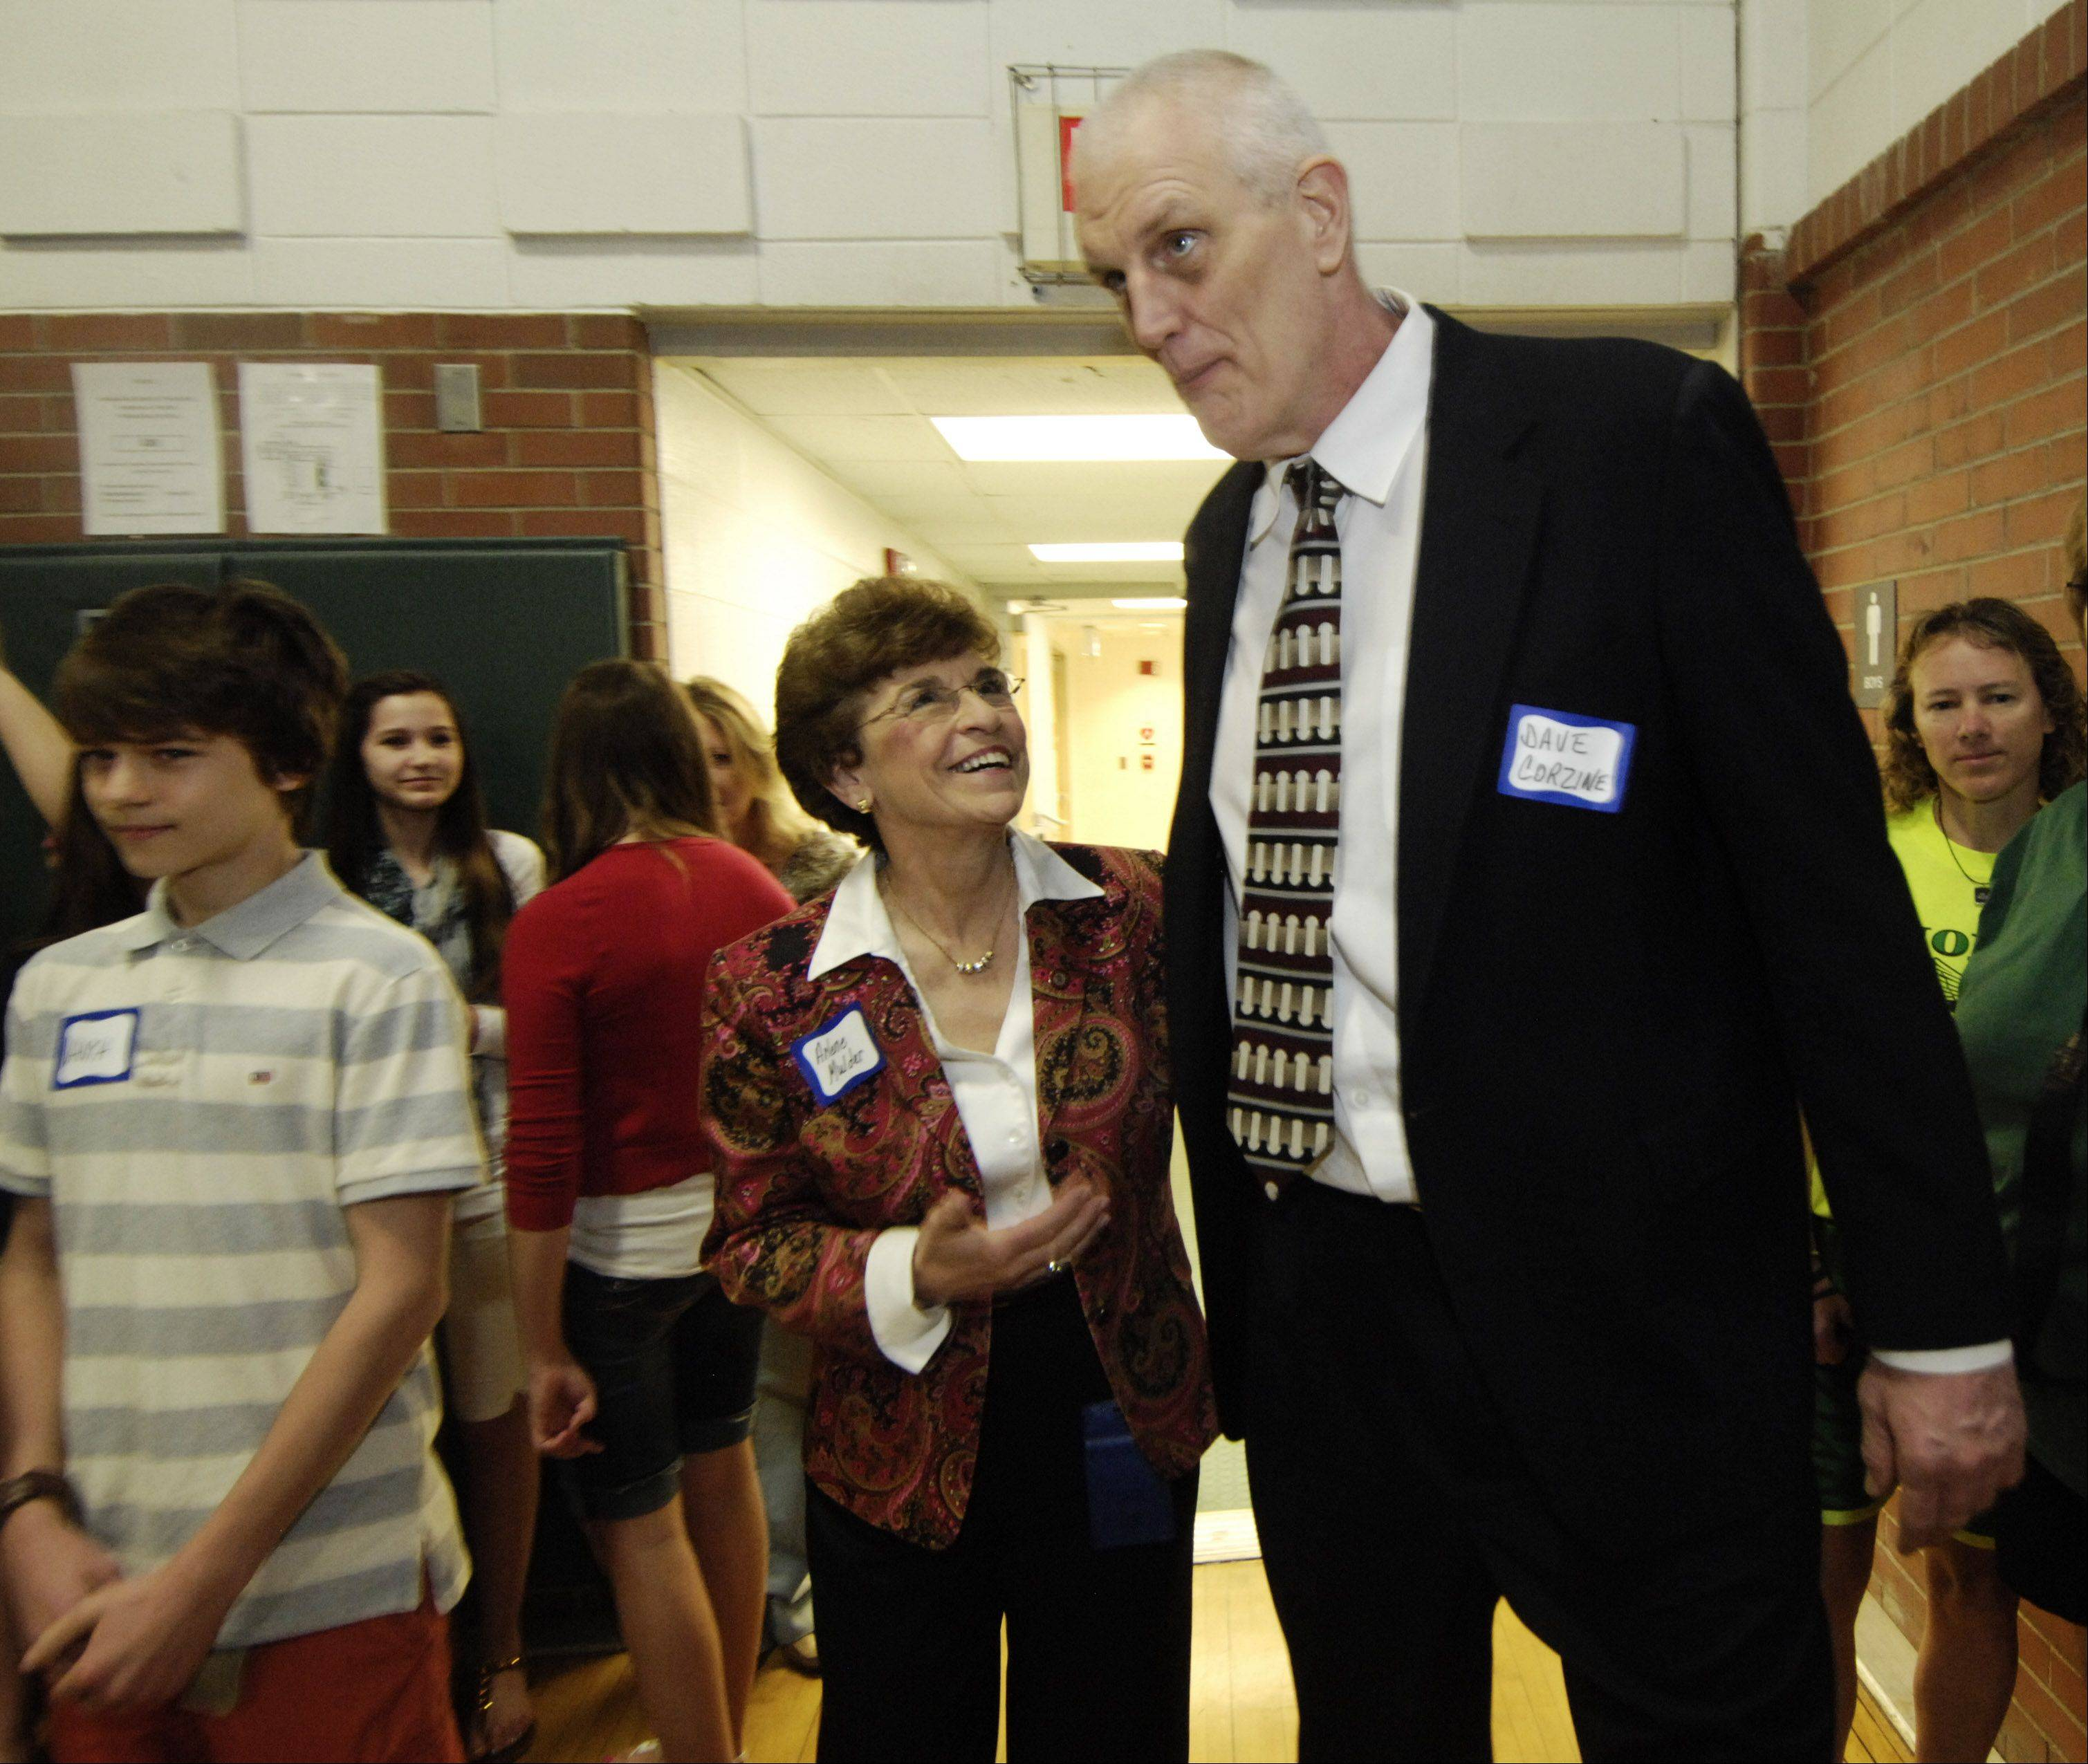 Dave Corzine, who achieved success in in high school, college and professional basketball, towers over Mayor Arlene Mulder as they enter an assembly at Thomas Middle School in Arlington Heights Thursday.